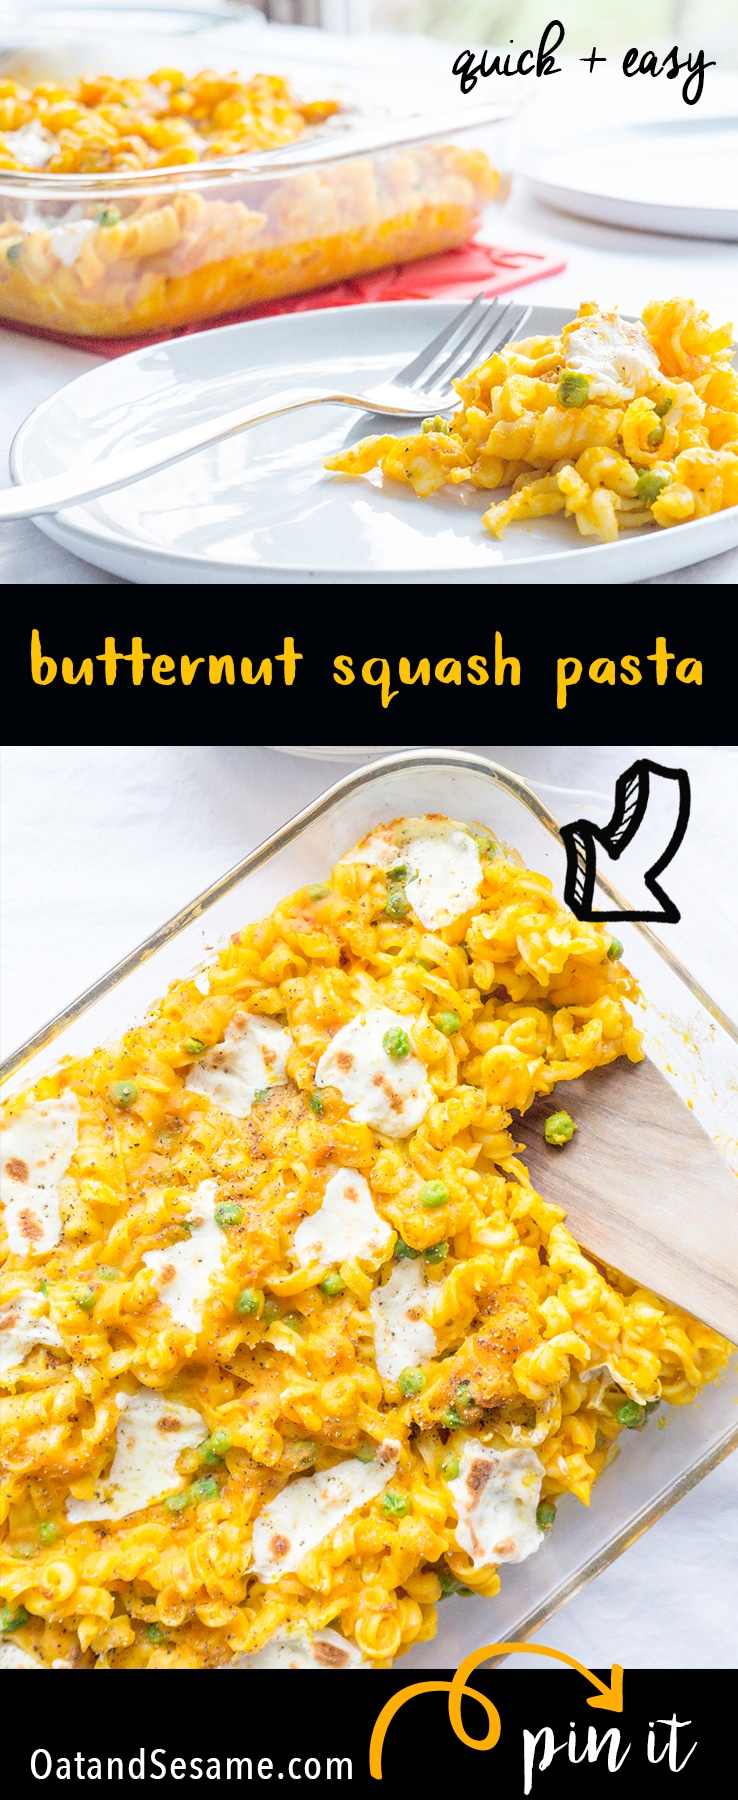 Weeknight Pasta Bake - CREAMY Butternut Squash Sauce with veggies of your choice. Dinner in 30 Minutes! | PASTA | BUTTERNUT SQUASH | VEGETARIAN | Recipe at OatandSesame.com